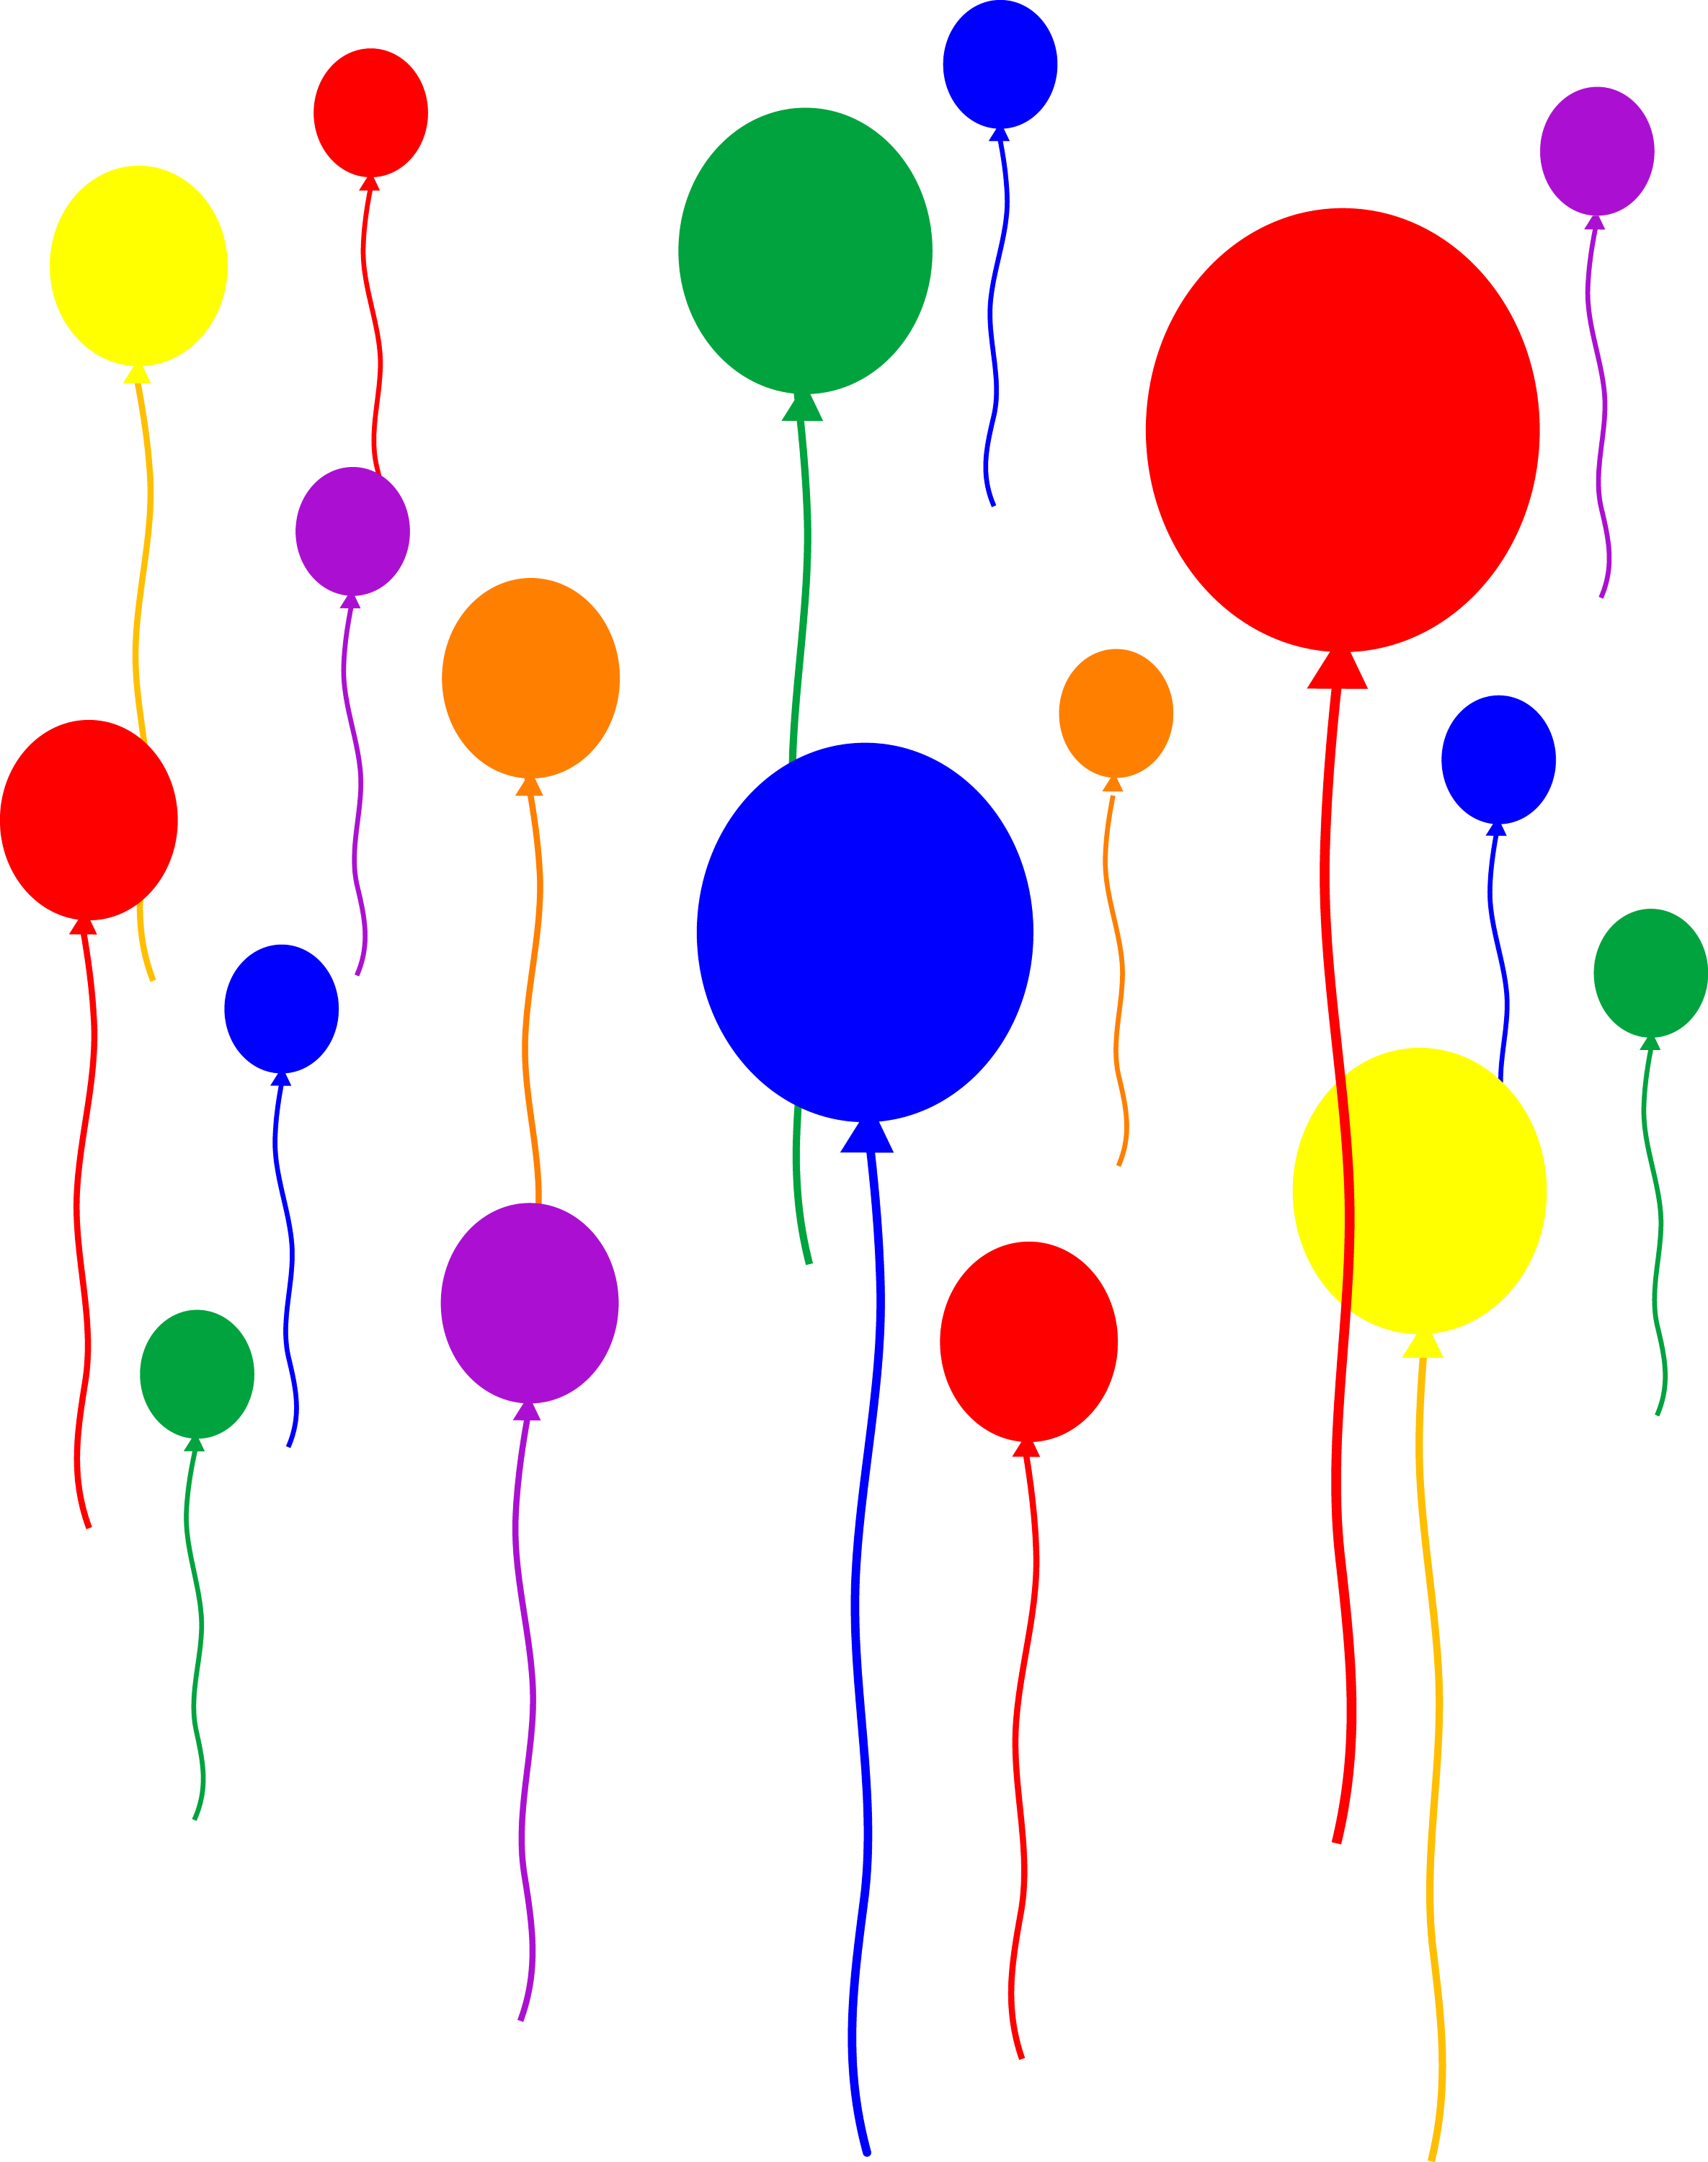 party balloons on transparent background free clip art rh sweetclipart com transparent clipart birthday transparent clipart images